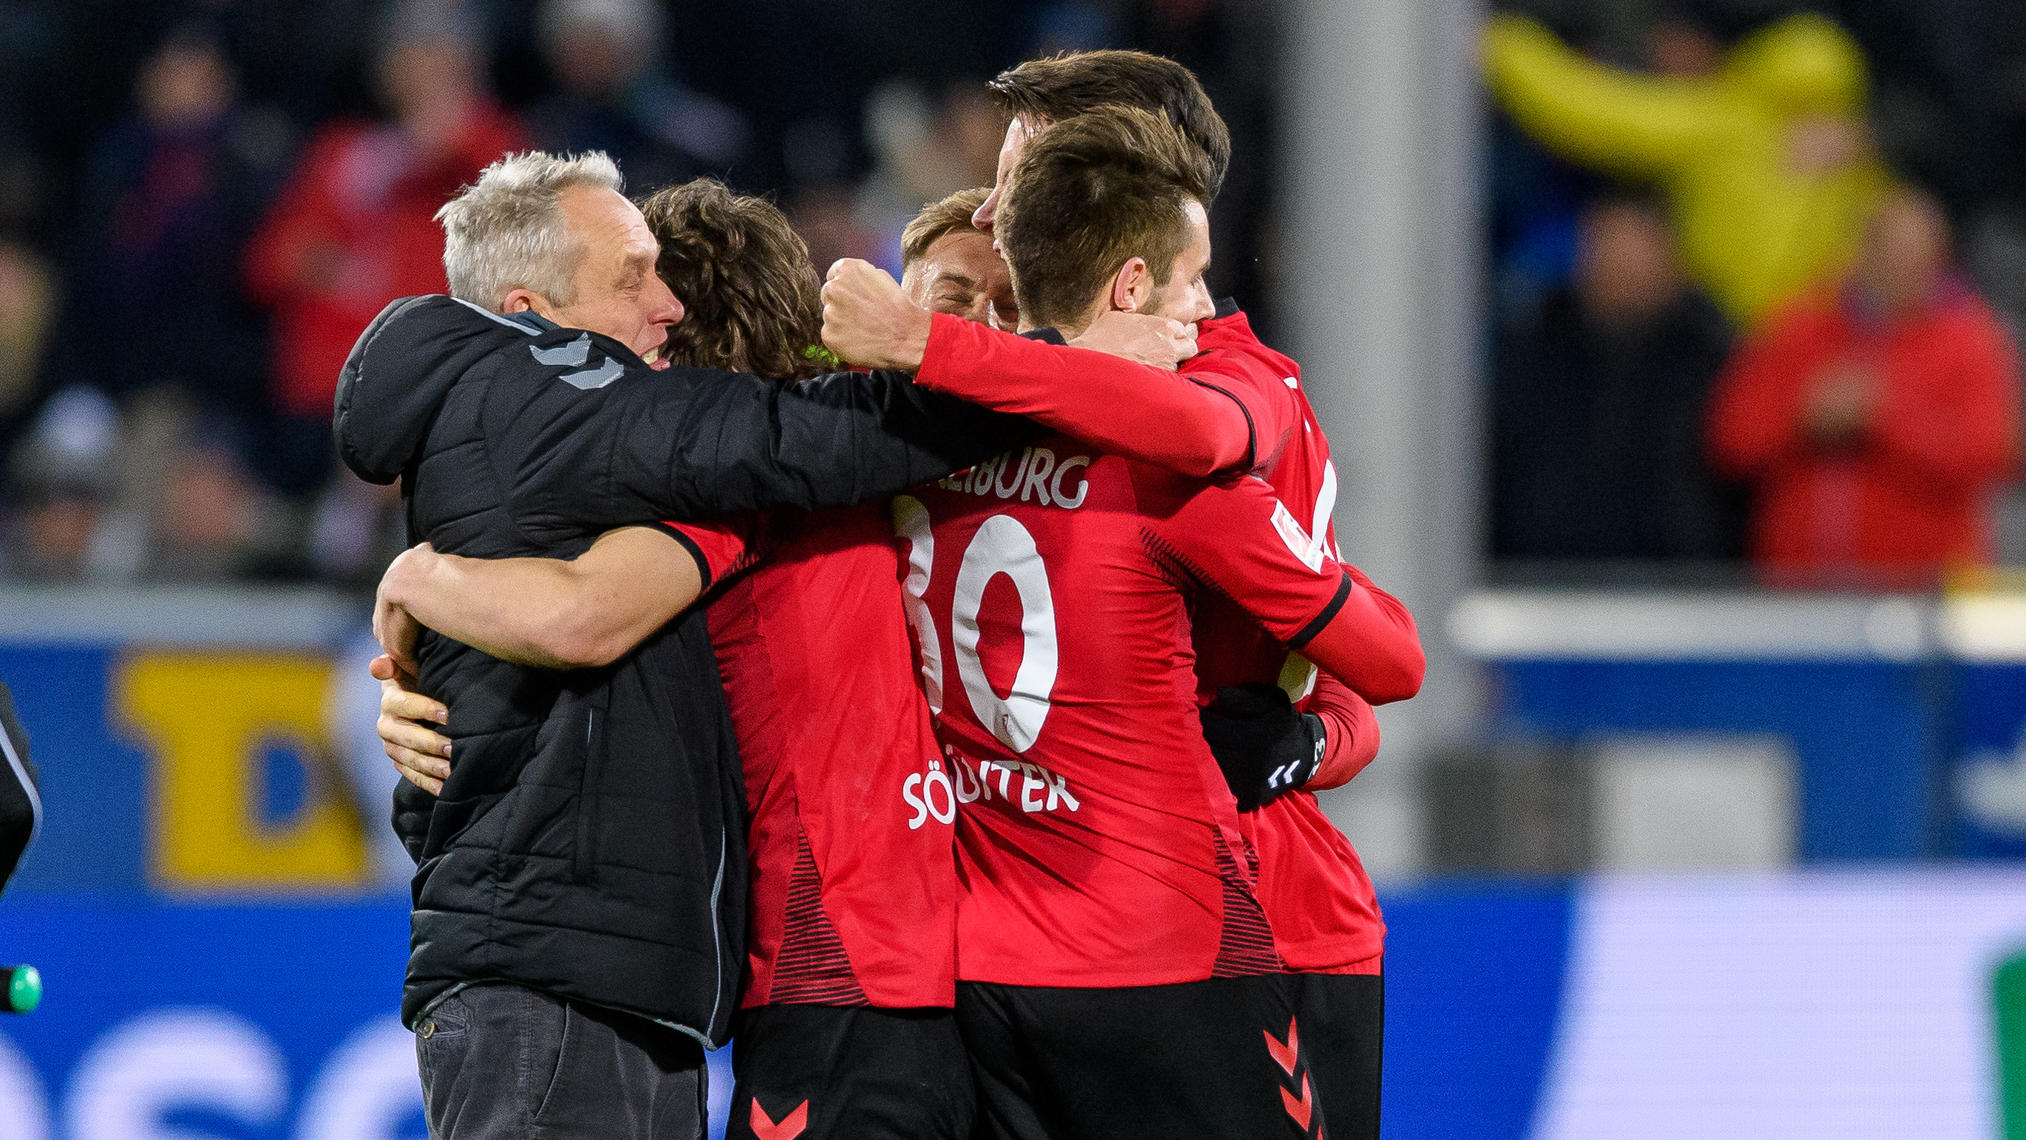 FREIBURG IM BREISGAU, GERMANY - DECEMBER 12: Head coach Christian Streich of Freiburg celebrates the victory with his players during the Bundesliga match between Sport-Club Freiburg and Borussia Moenchengladbach at Schwarzwald-Stadion on December 12,